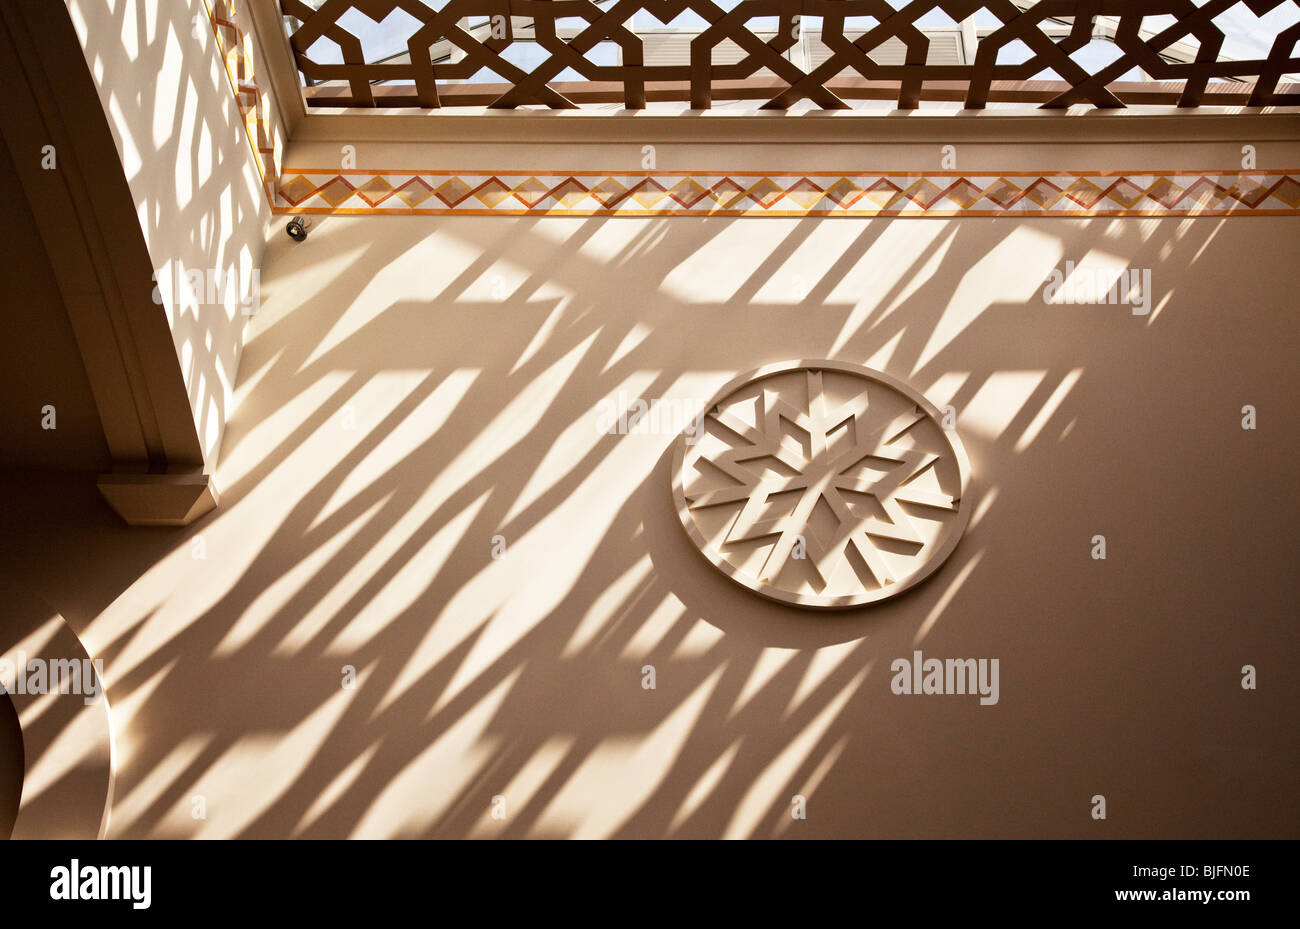 Patterns of light and shadow on a wall inside the Emirates Mall, Dubai, United Arab Emirates, UAE - Stock Image